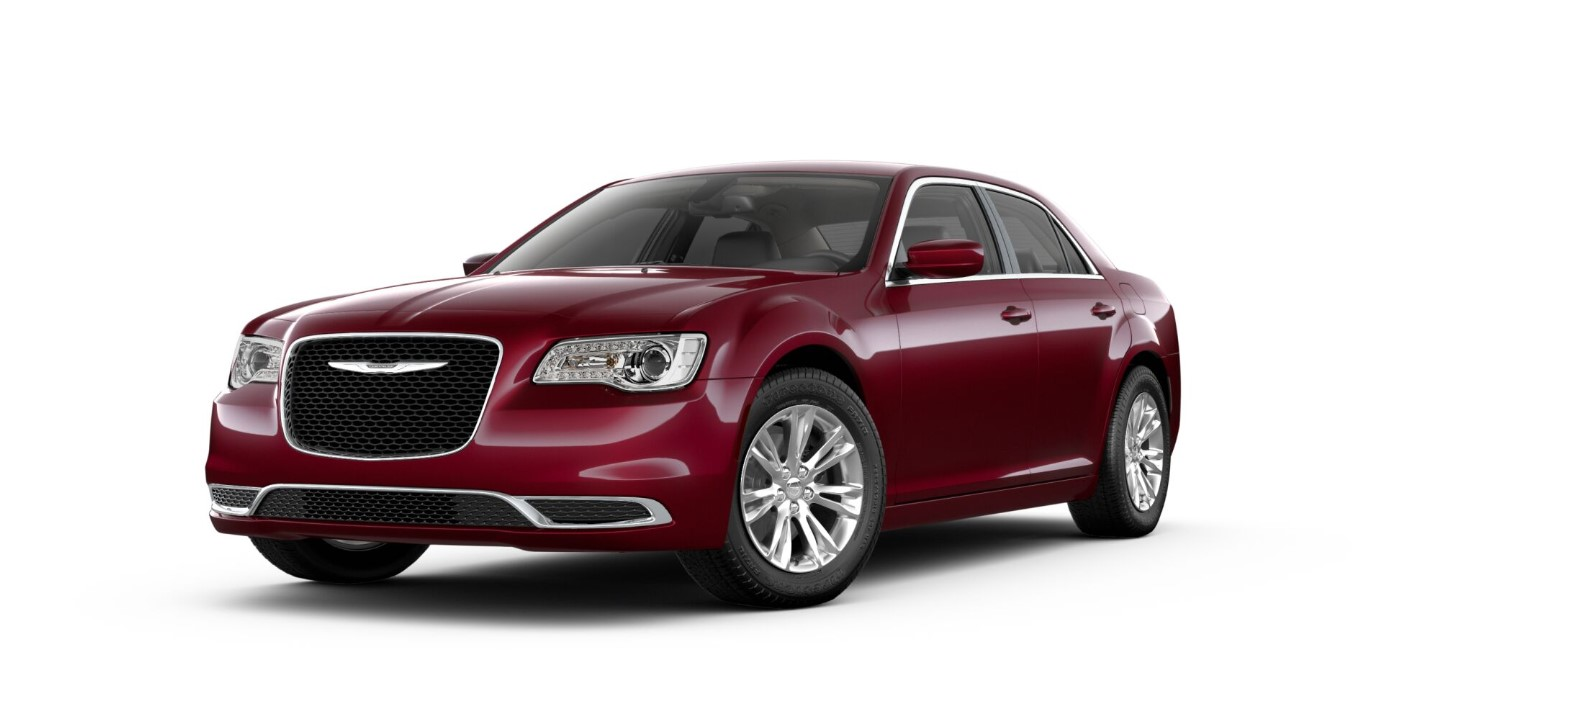 2018 Chrysler 300 Touring L Front Red Exterior